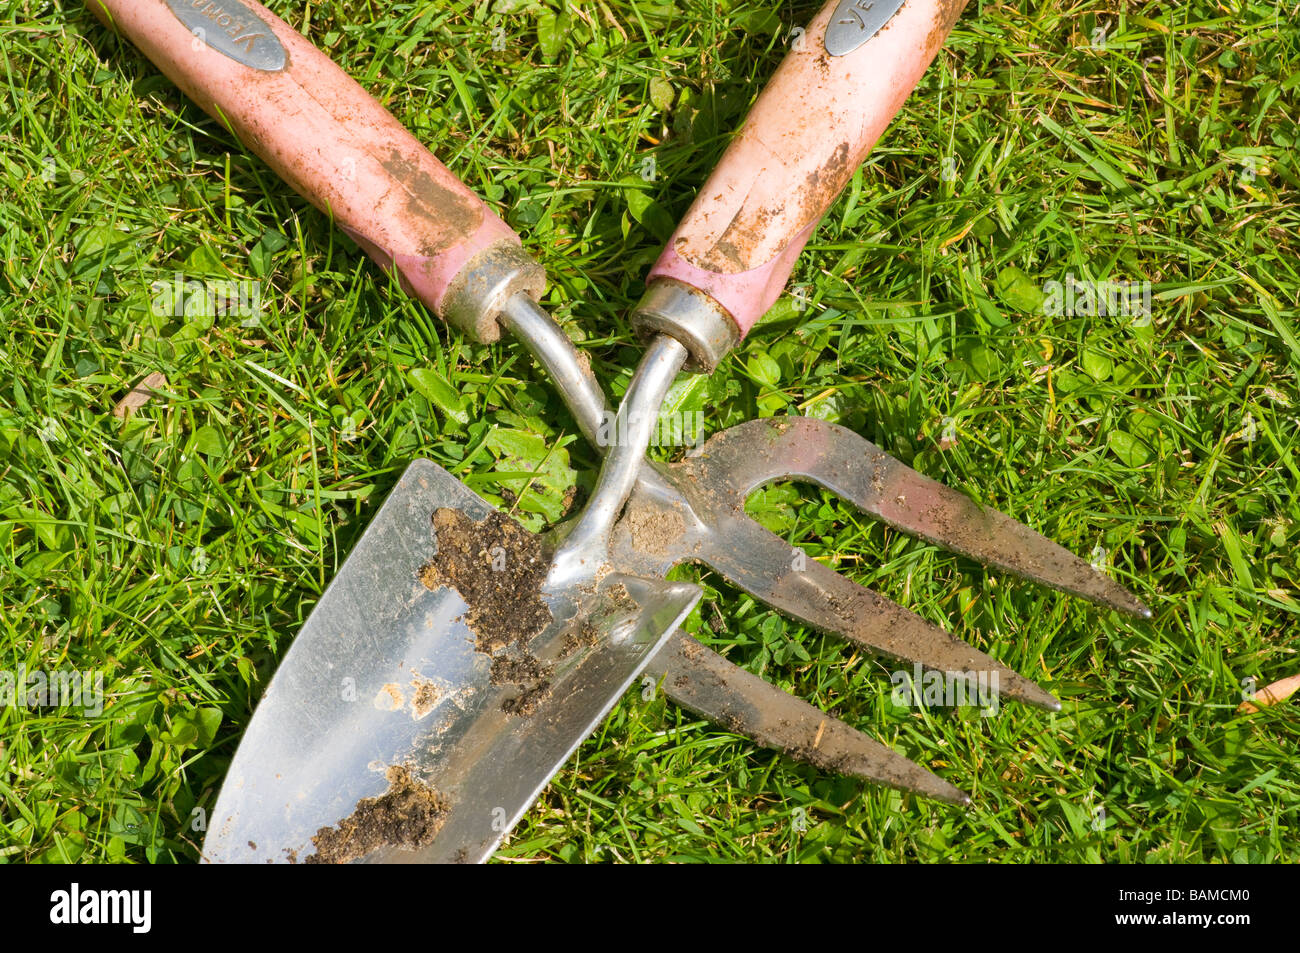 Gardening garden tools hand trowel and fork laying on the for Hand tools for planting